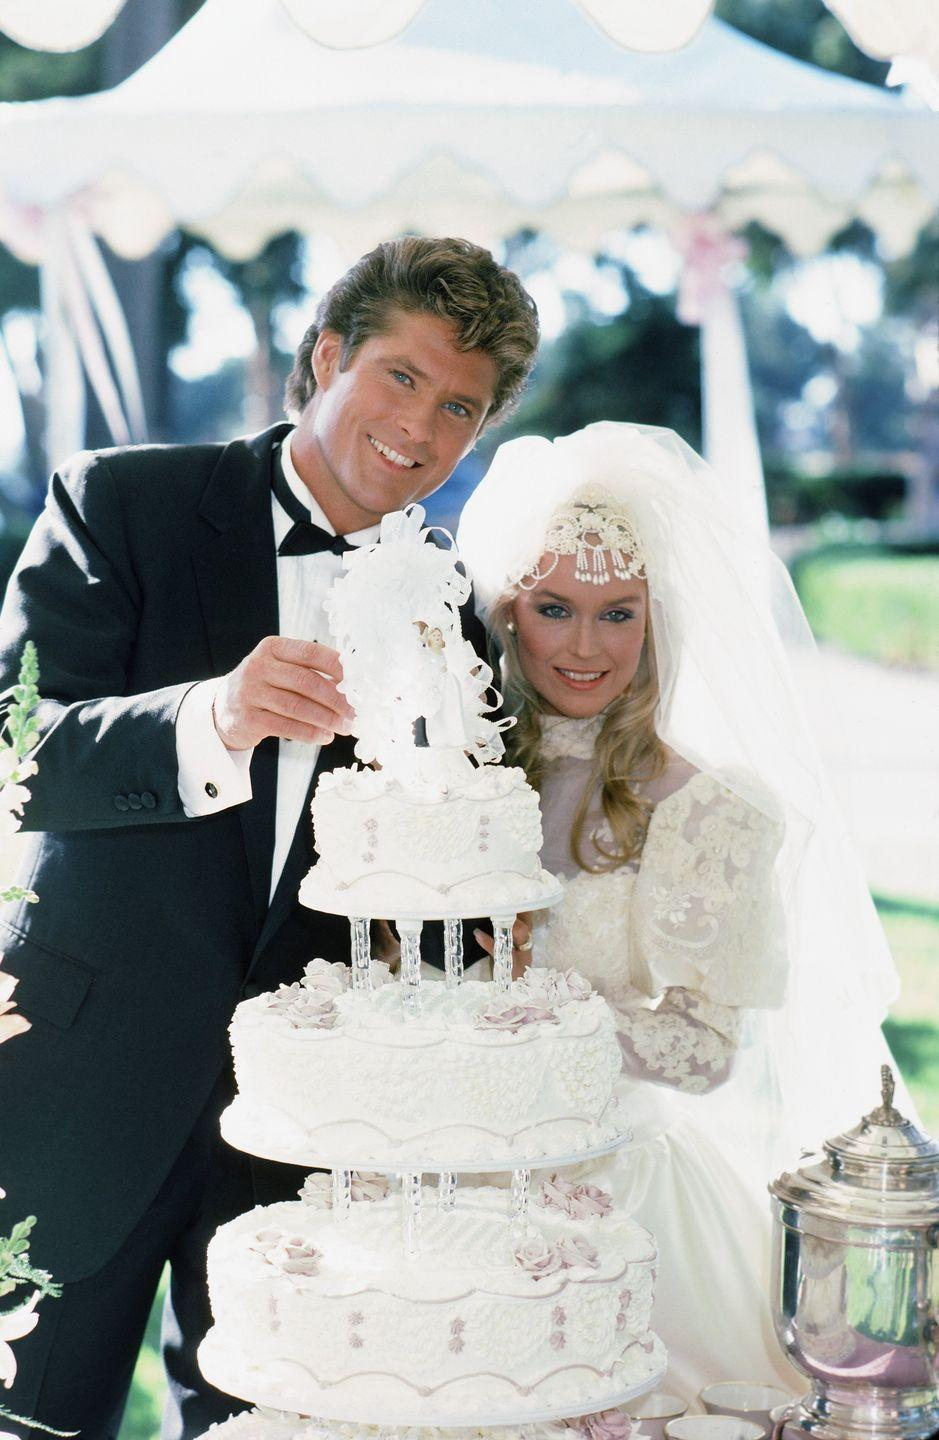 <p>Stevie Mason wore an elegant '80s wedding dress when she married her longtime love, Michael Knight, played by David Hasselhoff, on <em>Knight Rider </em>in 1985. The lace and taffeta princess gown featured puffy sleeves and an illusion neckline that paired perfectly with her over the top beaded headpiece. </p>